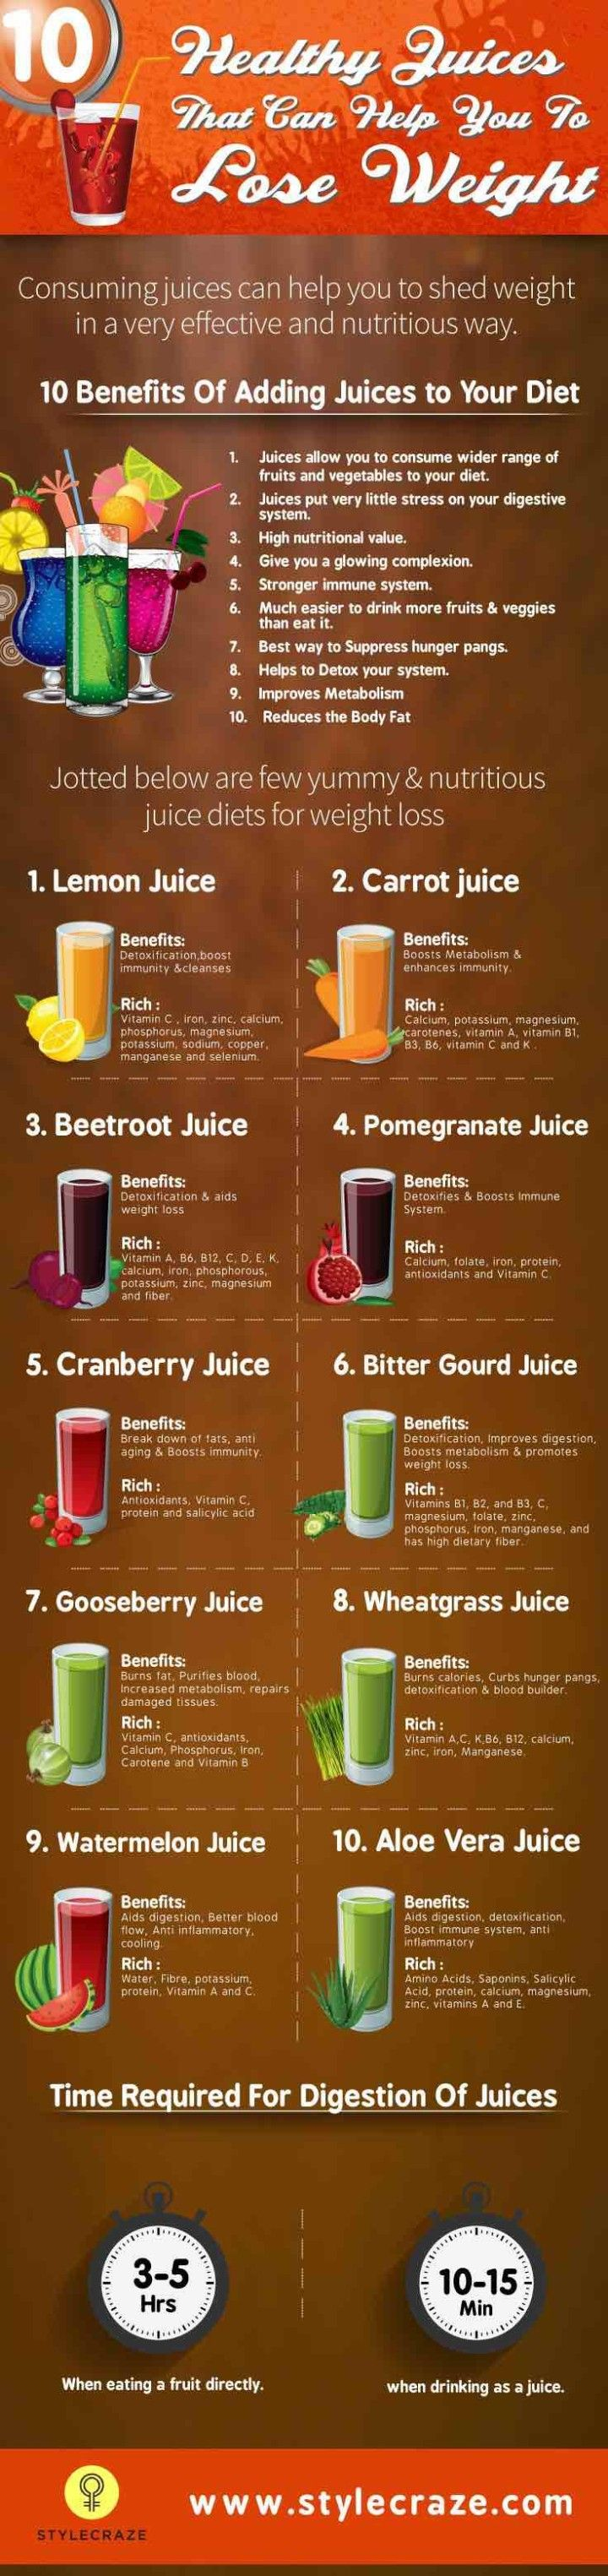 Look for juicing recipes to detox your body? Try these fresh and simple juice and smoothie recipes made from whole fruits and vegetables!